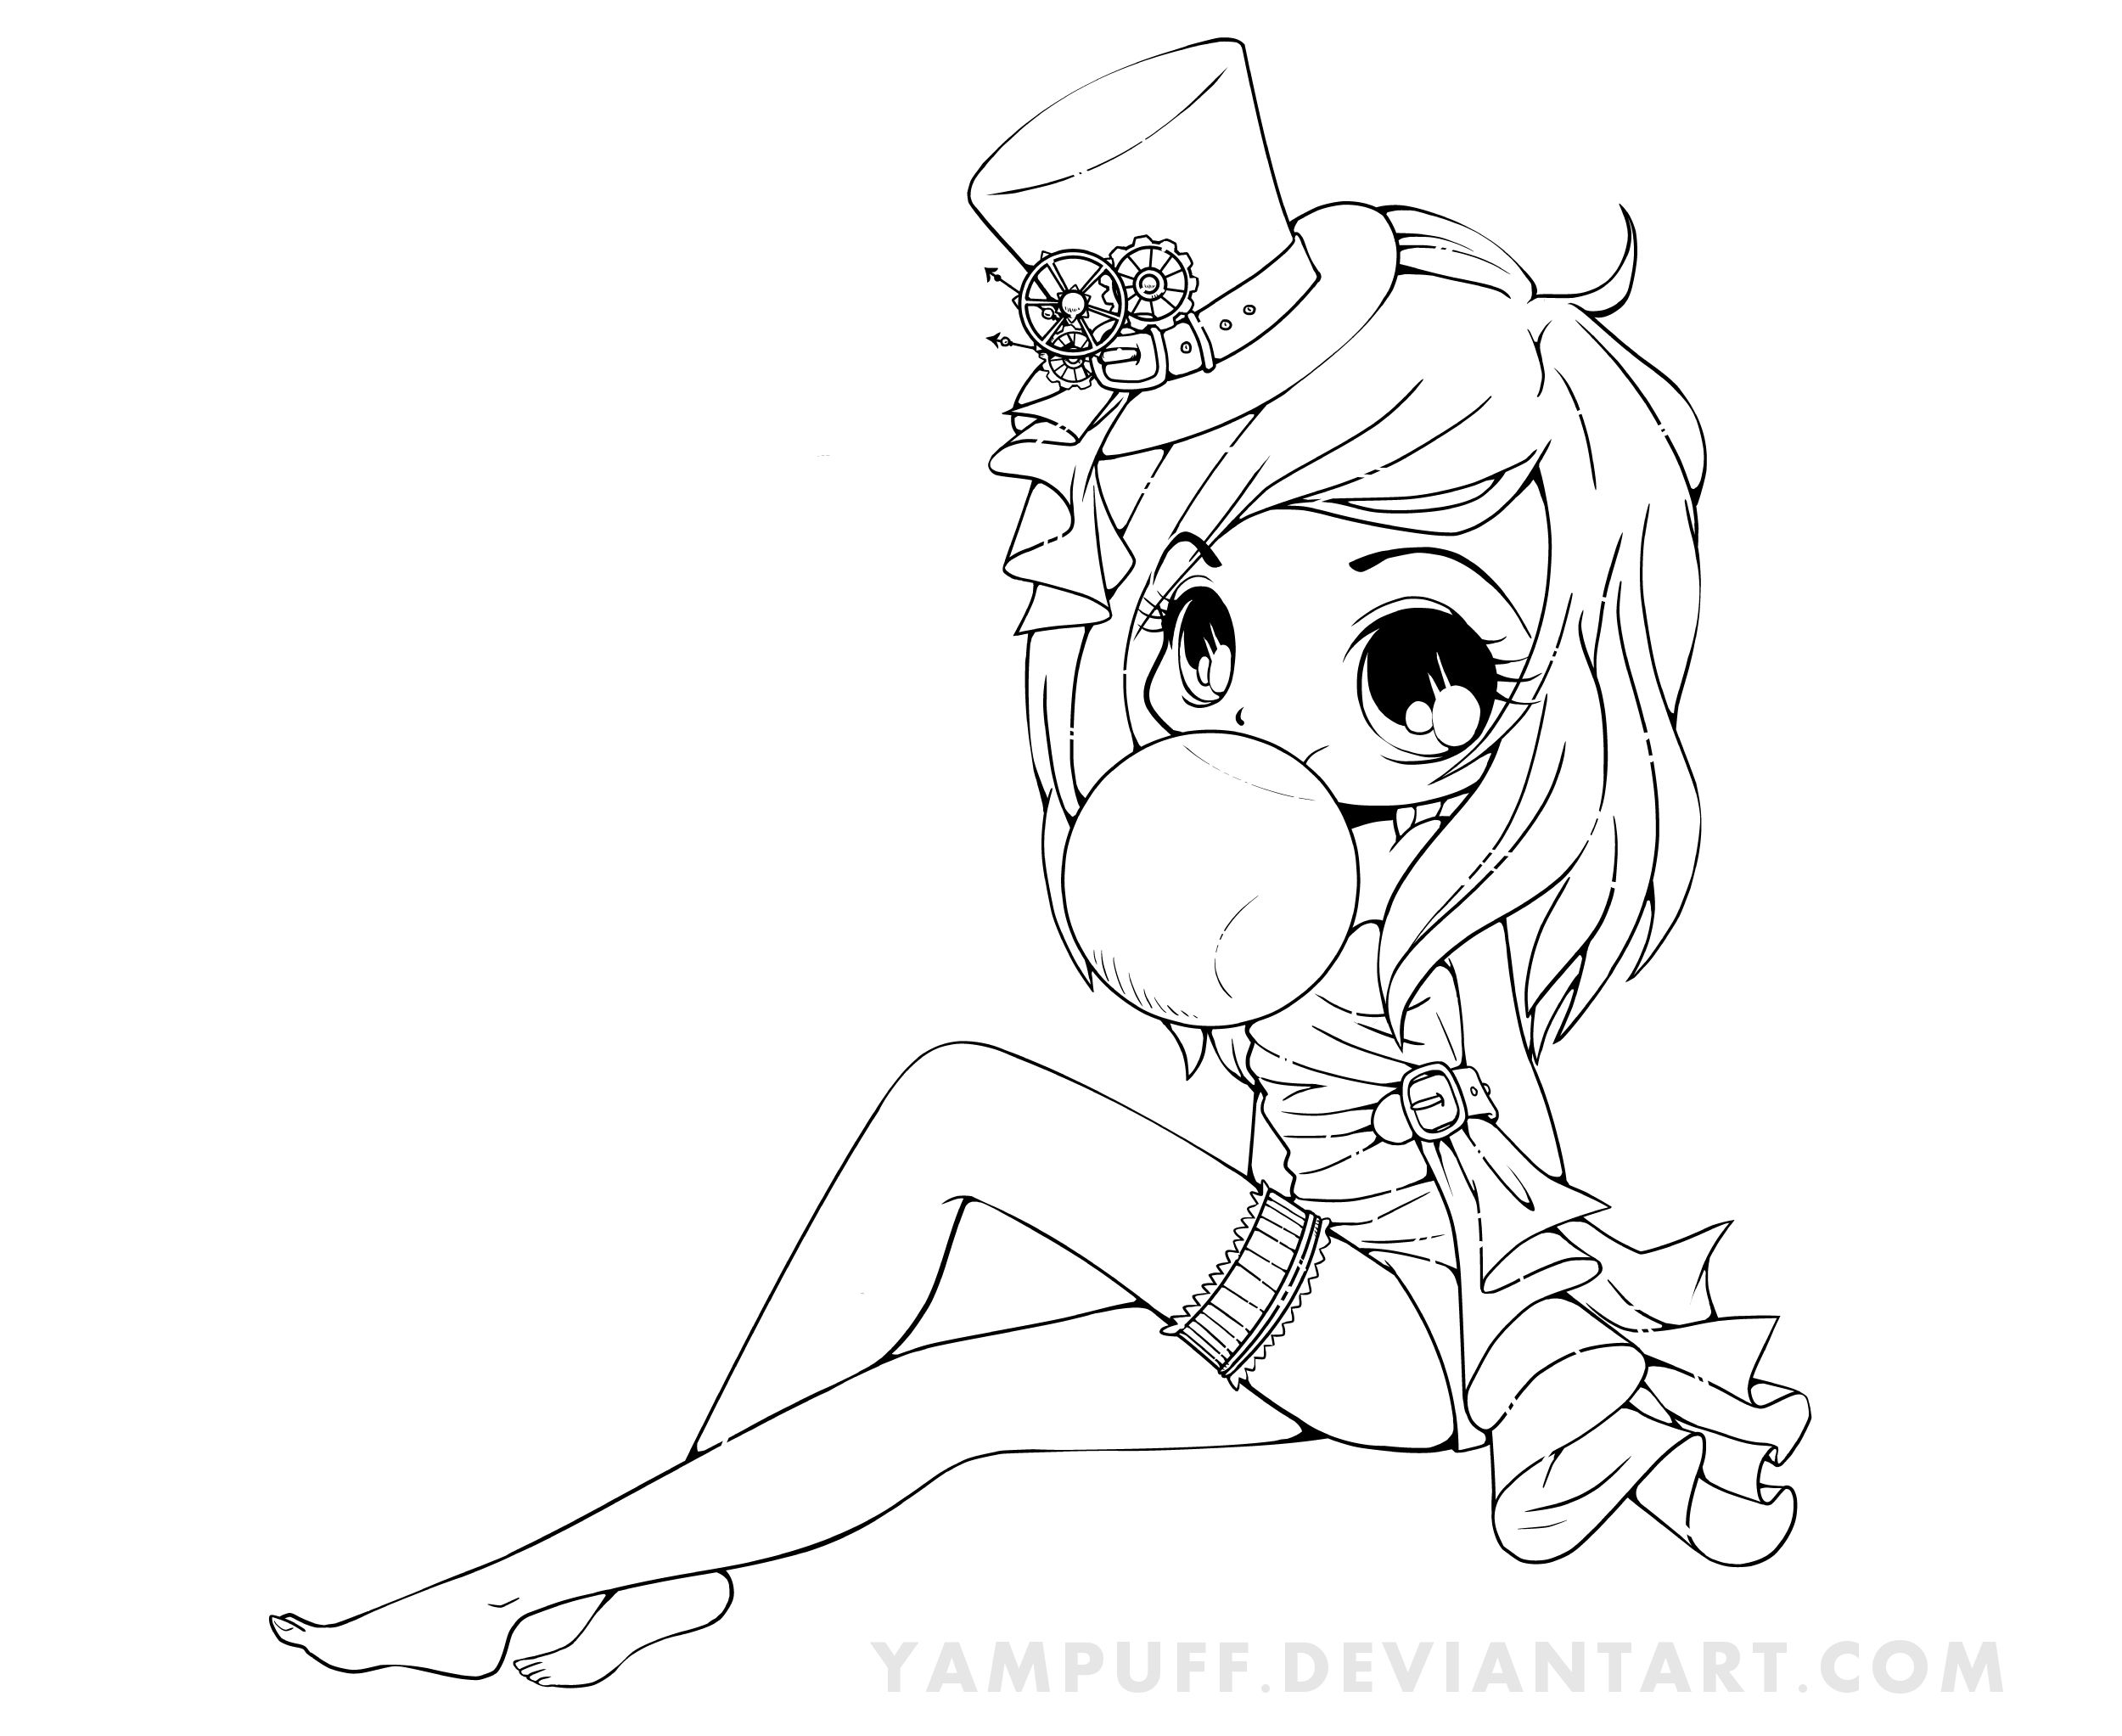 Chibi Girl Bubble Gum Chibi Coloring Pages Steampunk Coloring Colorful Drawings